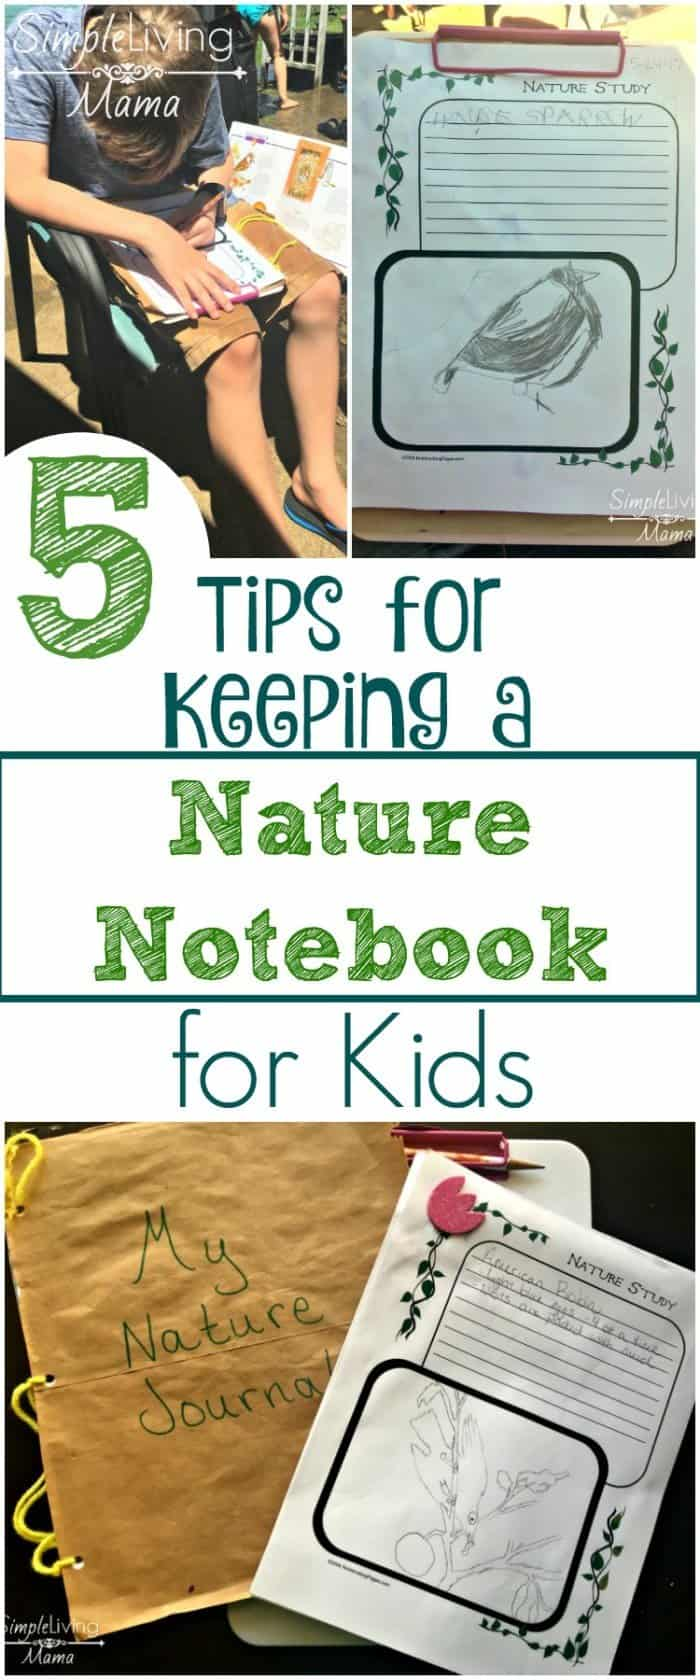 5-Tips-for-Keeping-a-Nature-Notebook-for-Kids